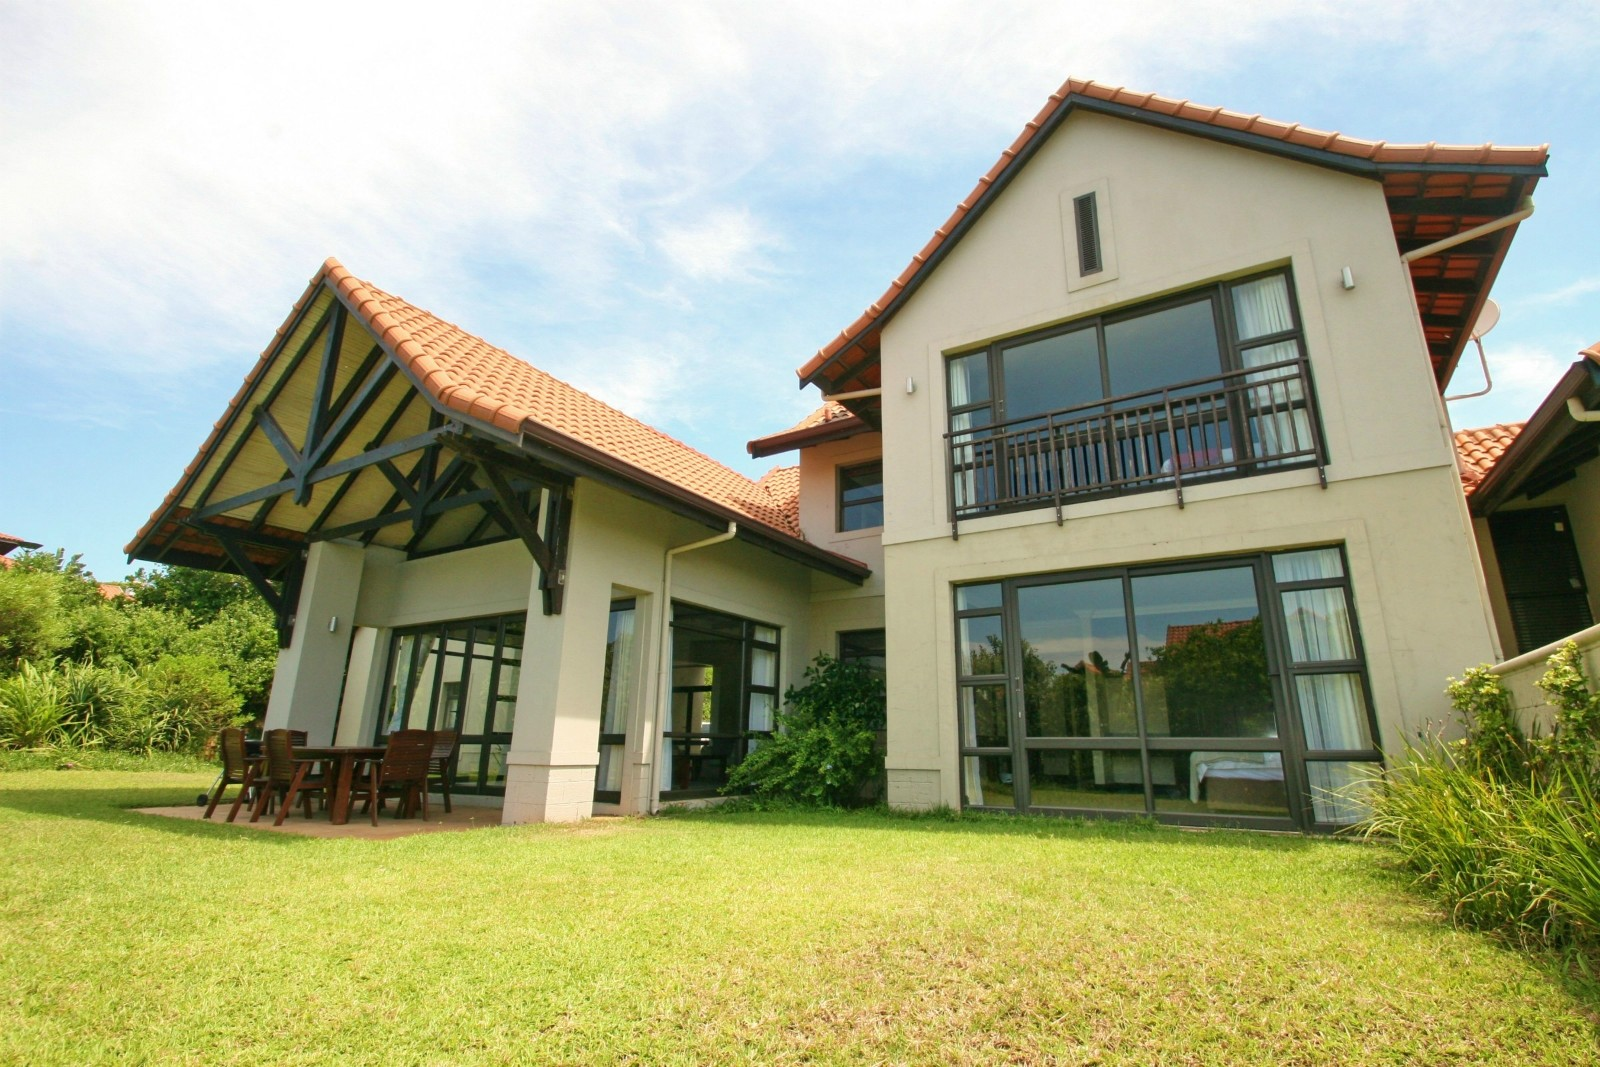 Zimbali Coastal Resort And Estate property for sale. Ref No: 13361531. Picture no 1